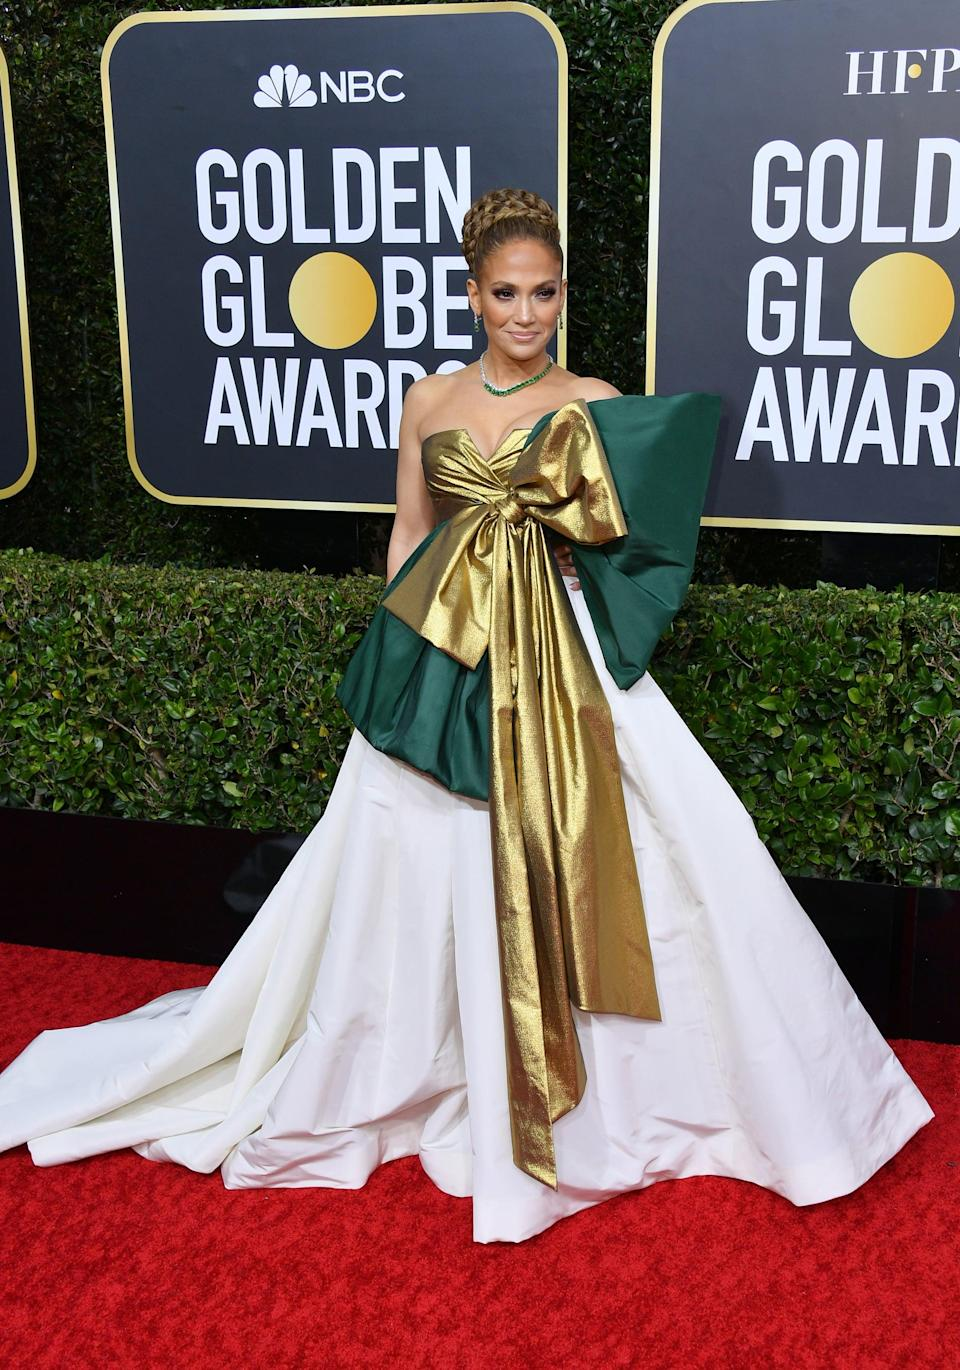 """<p><a href=""""https://www.popsugar.com/fashion/jennifer-lopez-dress-golden-globes-2020-47068542"""" class=""""link rapid-noclick-resp"""" rel=""""nofollow noopener"""" target=""""_blank"""" data-ylk=""""slk:Jennifer Lopez's double-bow Valentino gown"""">Jennifer Lopez's double-bow Valentino gown</a> reminded us of the presents underneath our Christmas tree at the 2020 Golden Globes. What's even more extraordinary? She was swathed in 145 carats of Henry Winston emeralds and diamonds!</p>"""